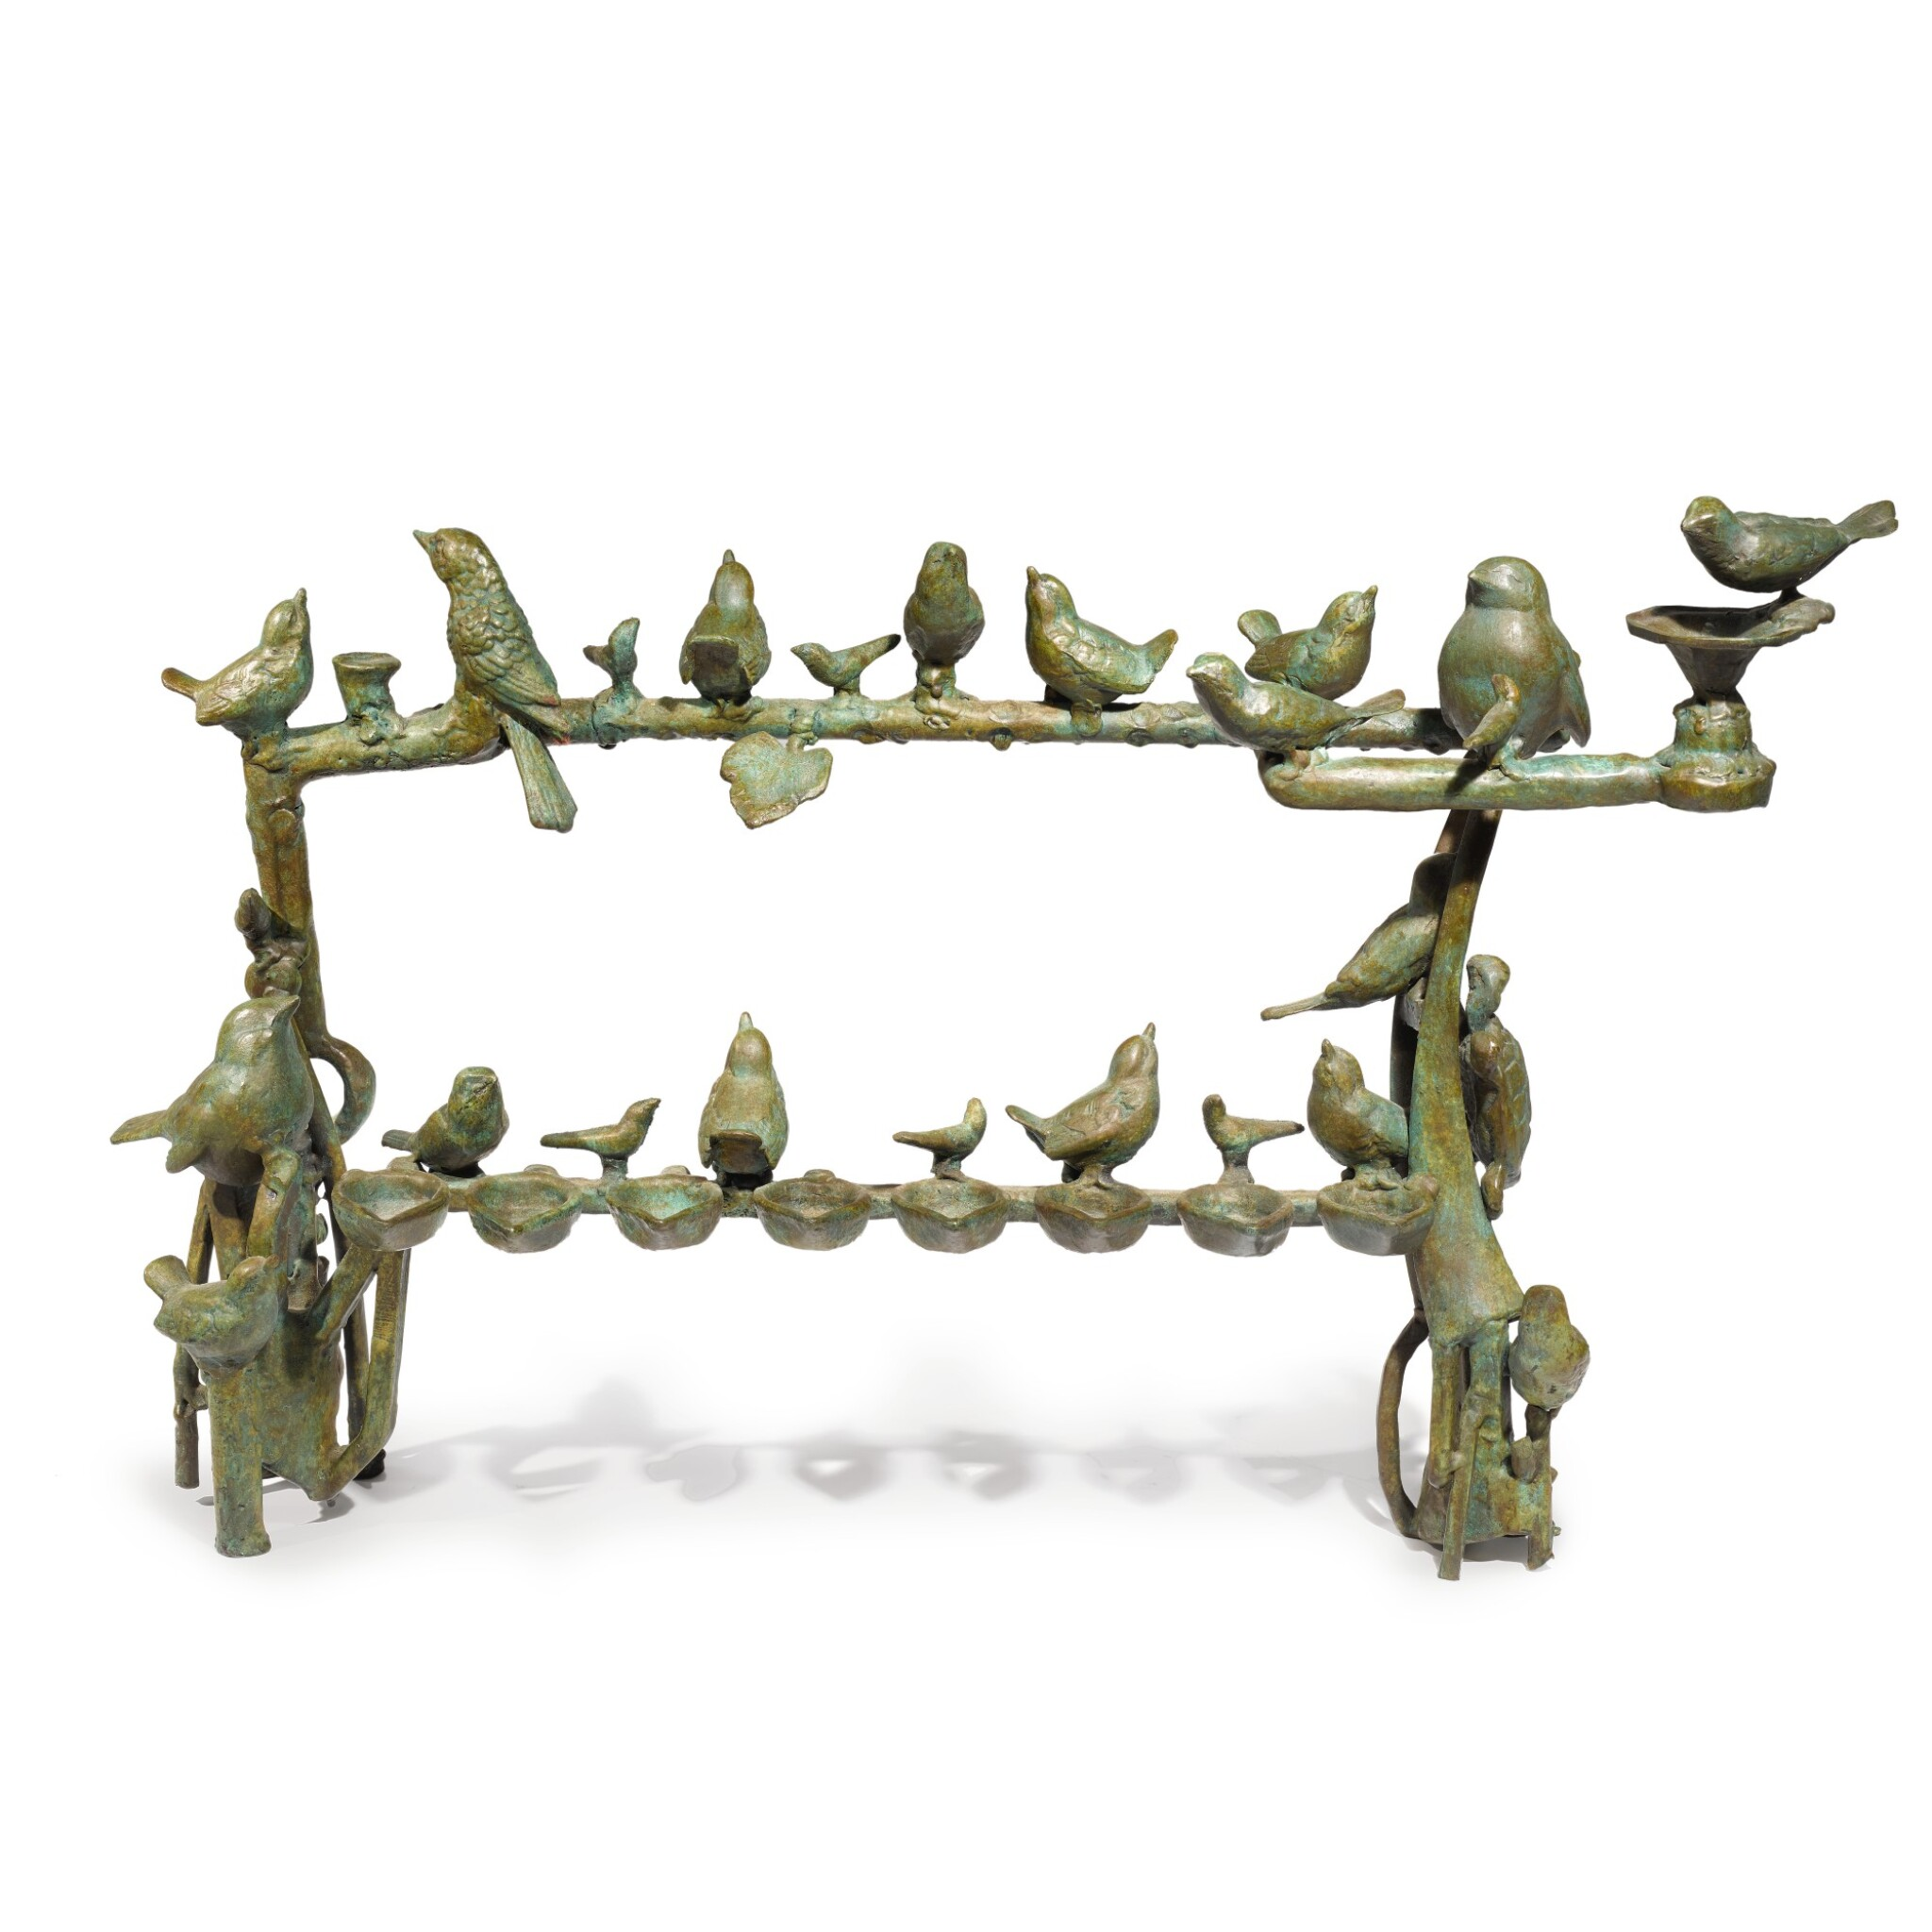 """View full screen - View 1 of Lot 131. A """"BIRD ON A WIRE"""" ISRAELI BRONZE HANUKAH LAMP, ILANA GOOR, LATER 20TH CENTURY."""